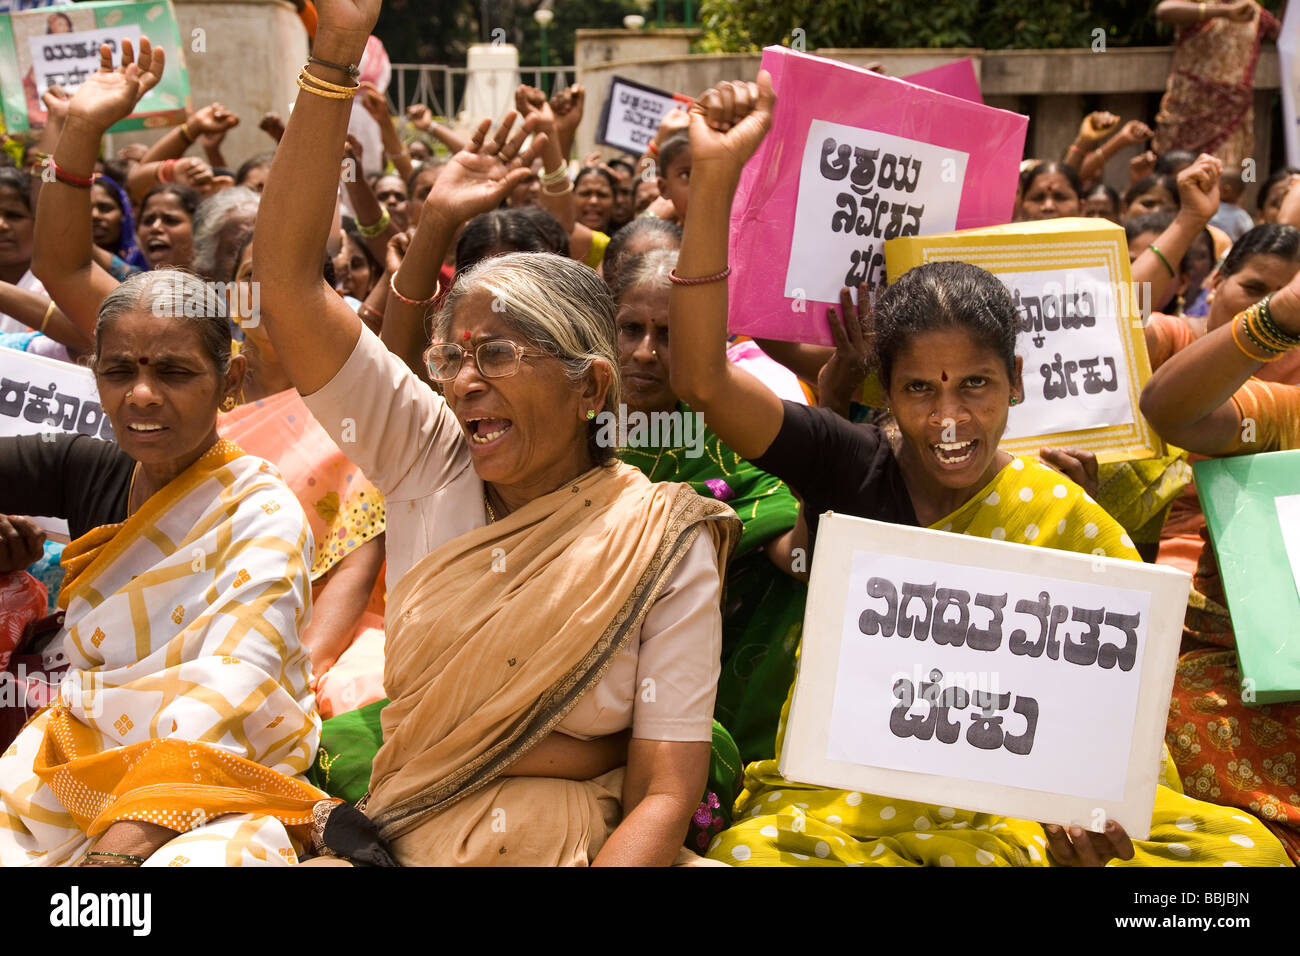 Women hold placards during a protest in Bangalore, India. The women are demostrating for women's and dalit (untouchable) - Stock Image